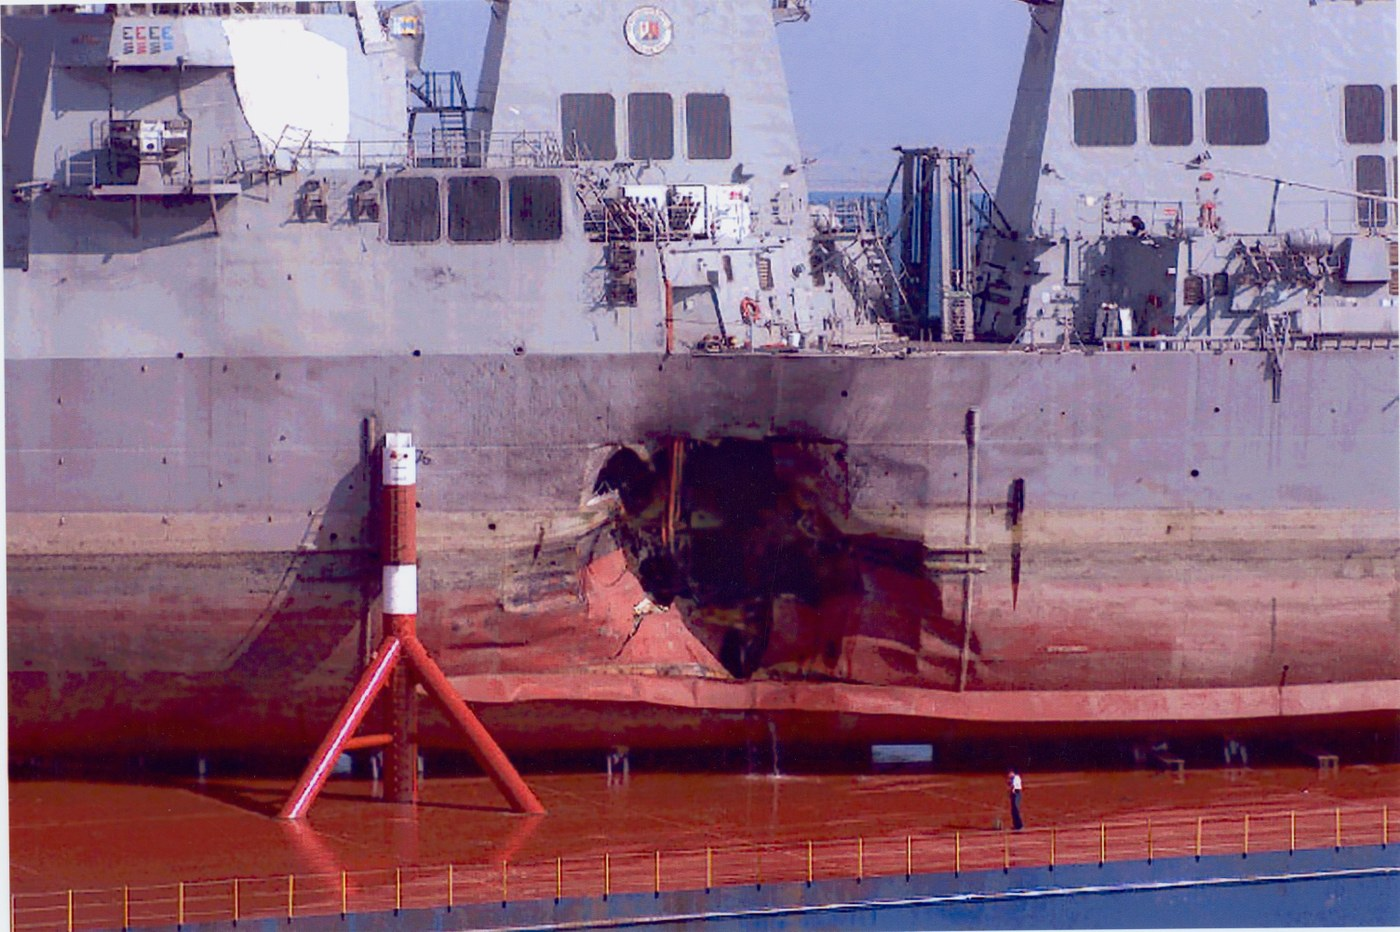 USS Cole was bombed in an attack against the  United States Navy  guided-missile destroyer  USS  Cole   on 12 October 2000.